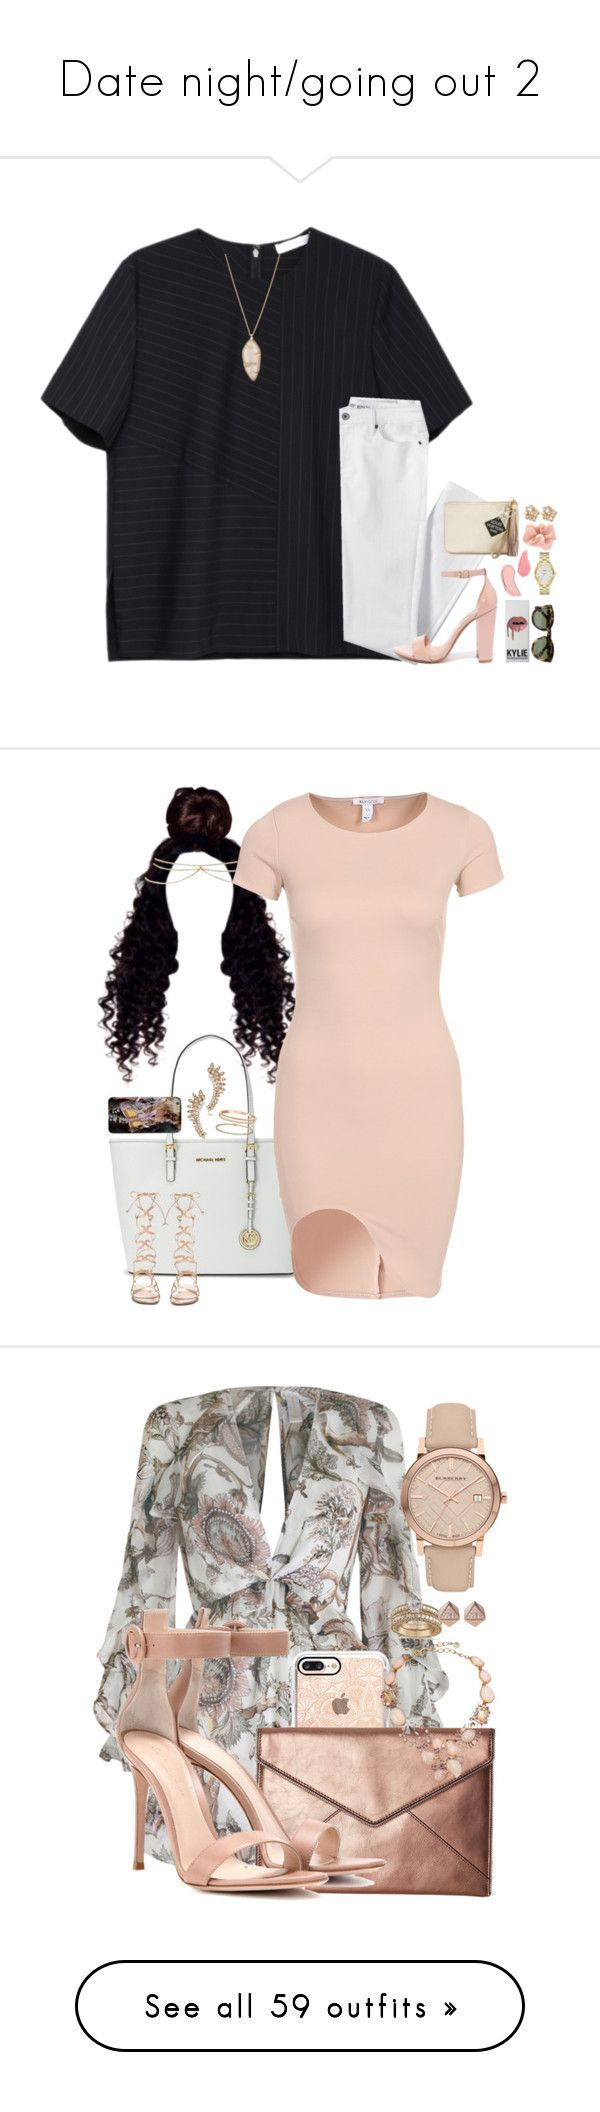 """""""Date night/going out 2"""" by jada-aphrodite ❤ liked on Polyvore featuring Alexander Wang, Lands' End, Steve Madden, Chico's, Alexis Bittar, NYX, Kylie Cosmetics, Kate Spade, Accessorize and Louis Vuitton"""